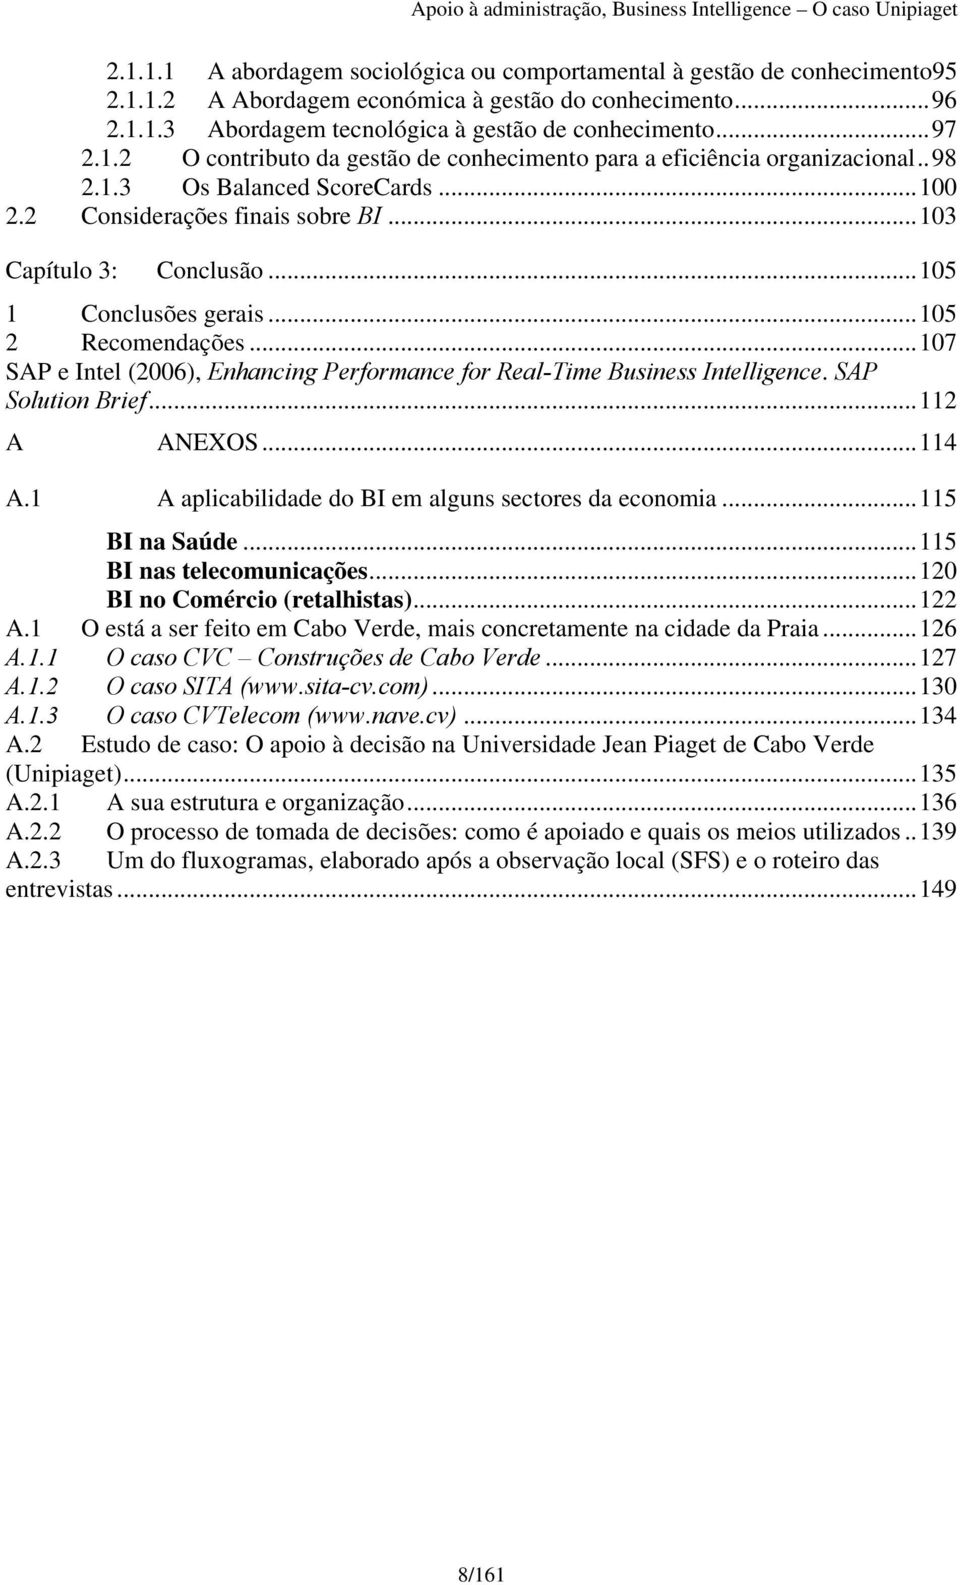 ..105 1 Conclusões gerais...105 2 Recomendações...107 SAP e Intel (2006), Enhancing Performance for Real-Time Business Intelligence. SAP Solution Brief...112 A ANEXOS...114 A.